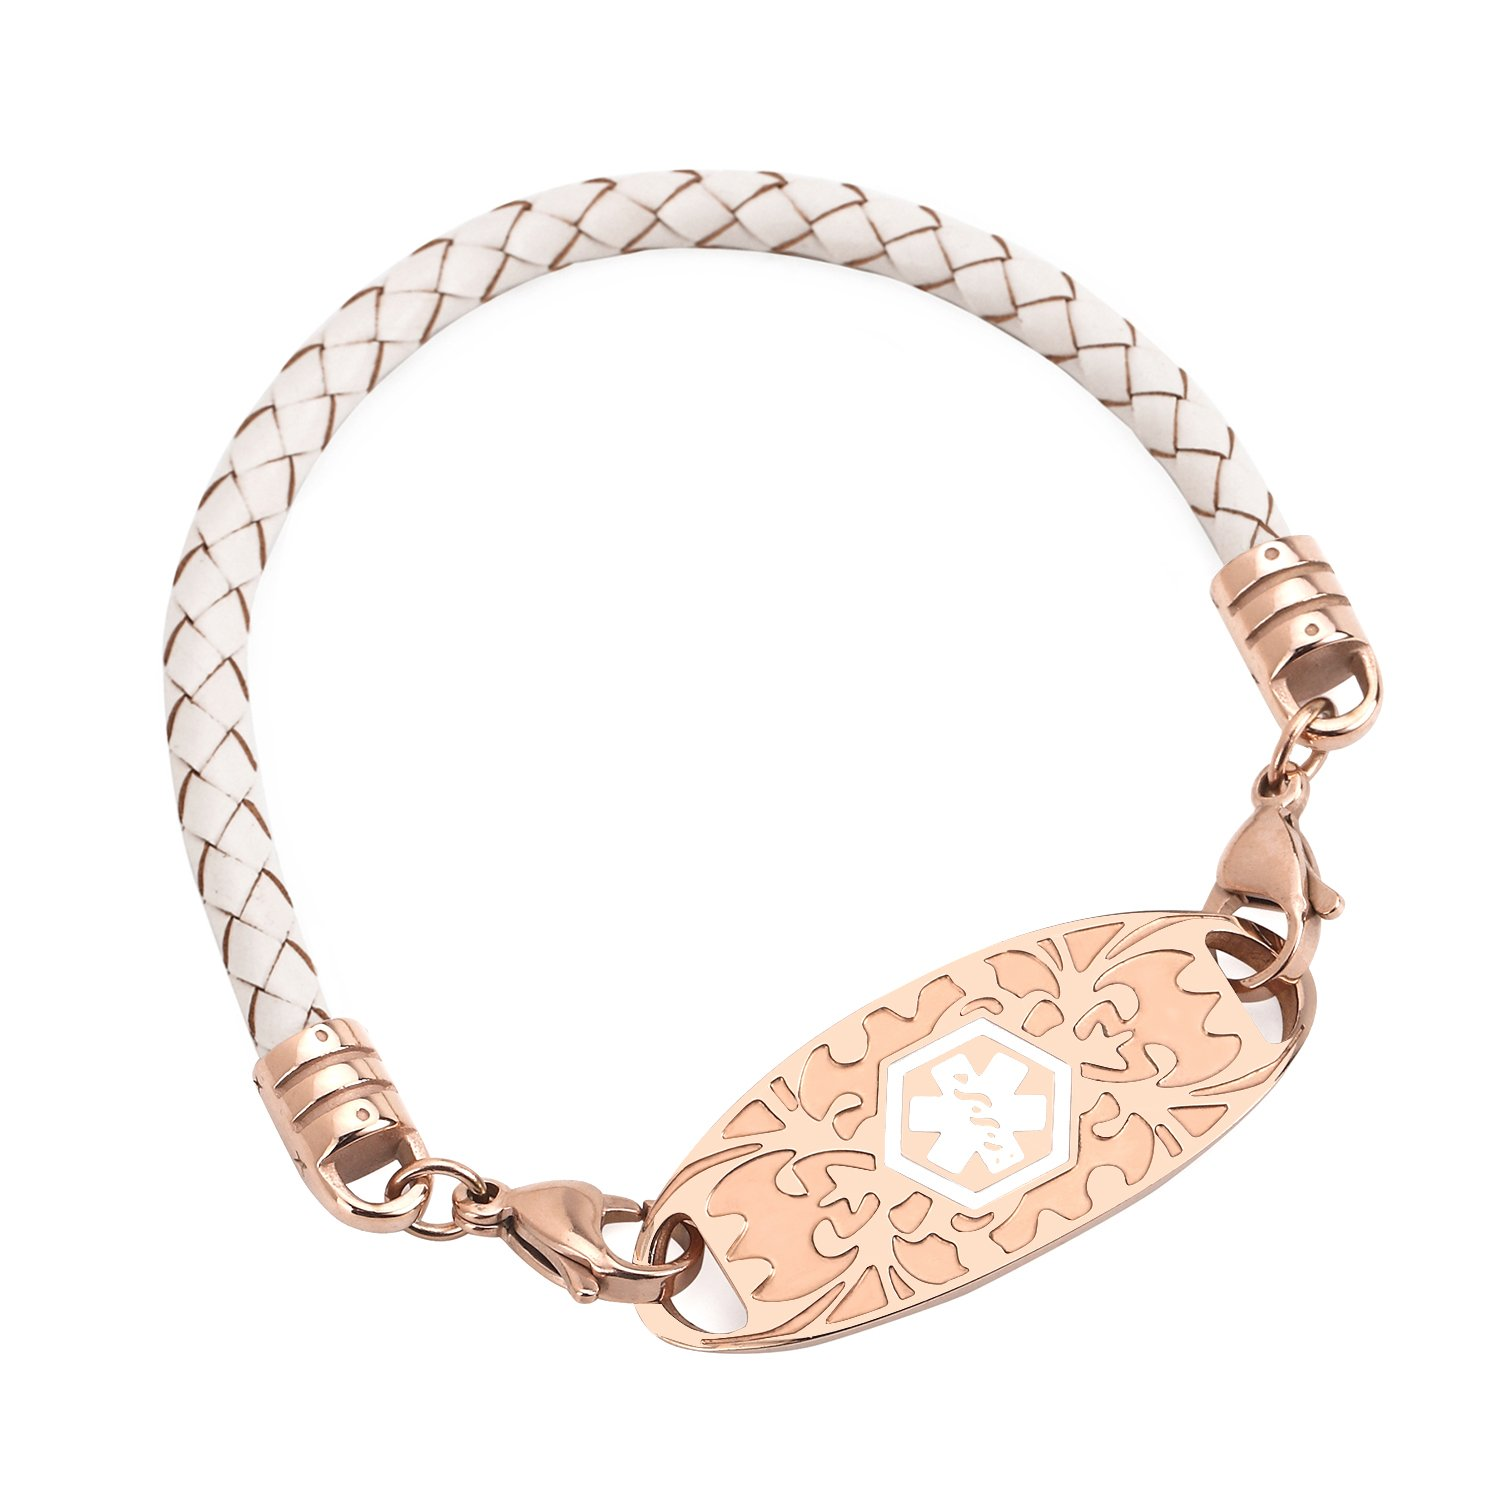 BAIYI Custom Rose Gold Medical Alert ID Tags Bracelets with White Leather Braided Bangle 7.5 in